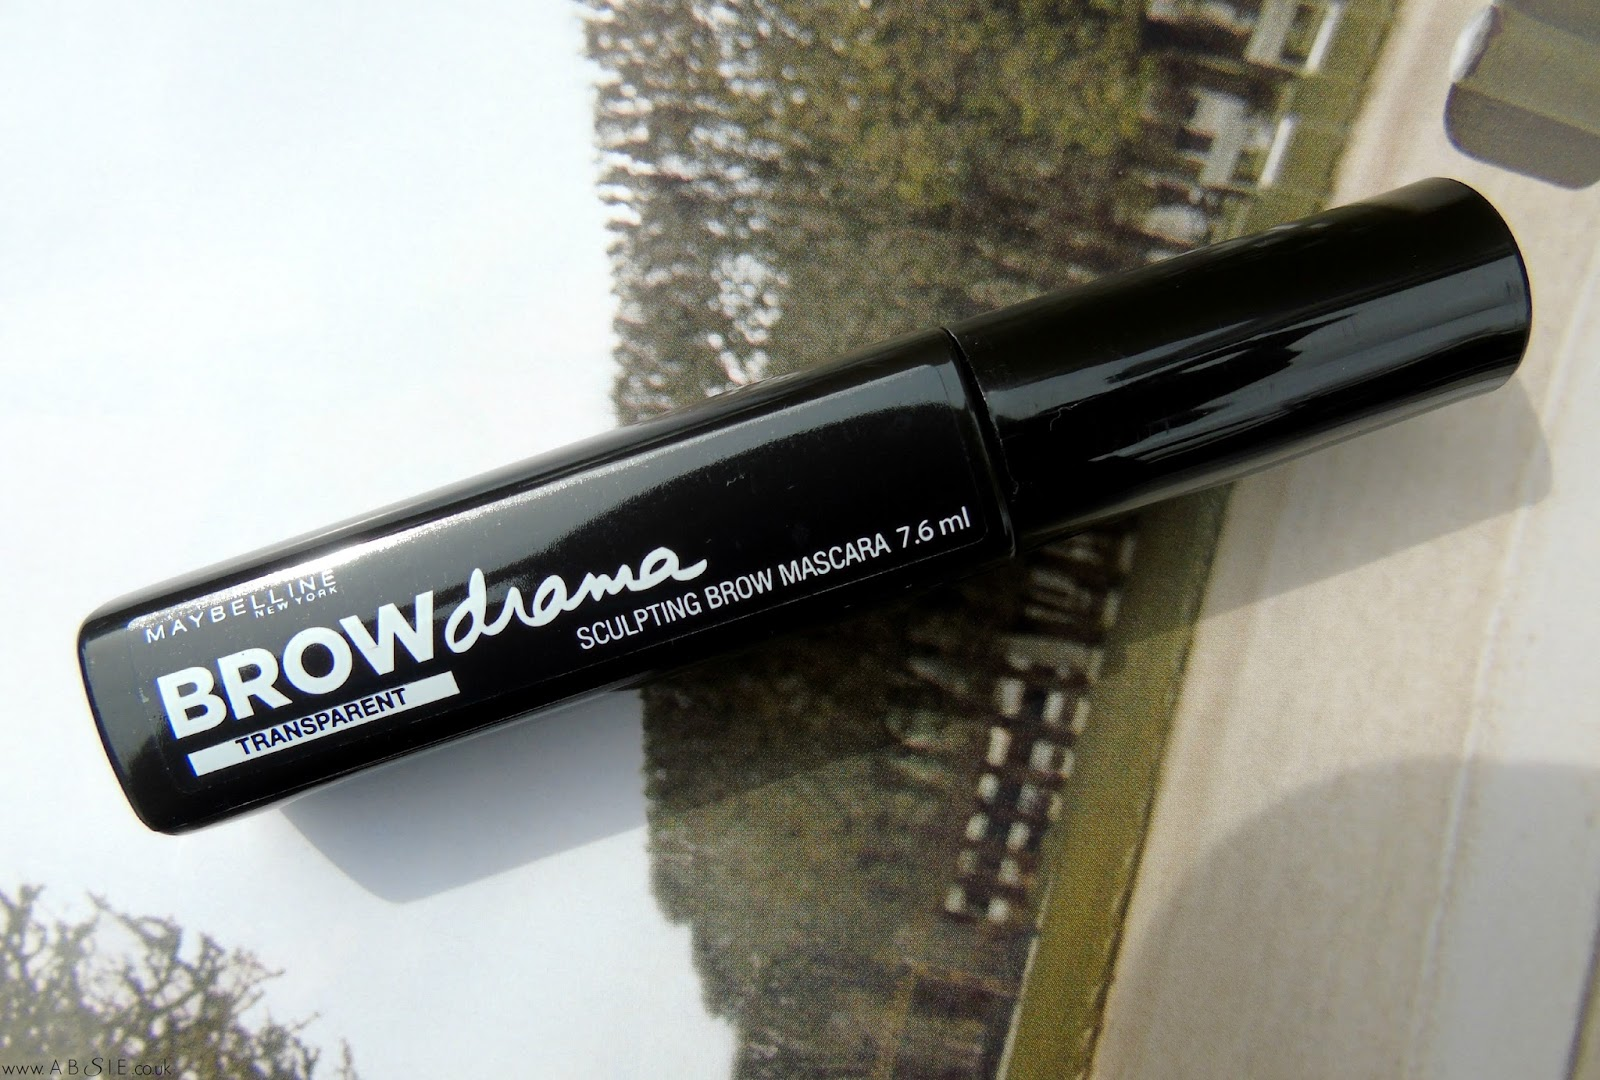 www.absie.co.uk | Maybelline Brow Drama in Transparent | Review